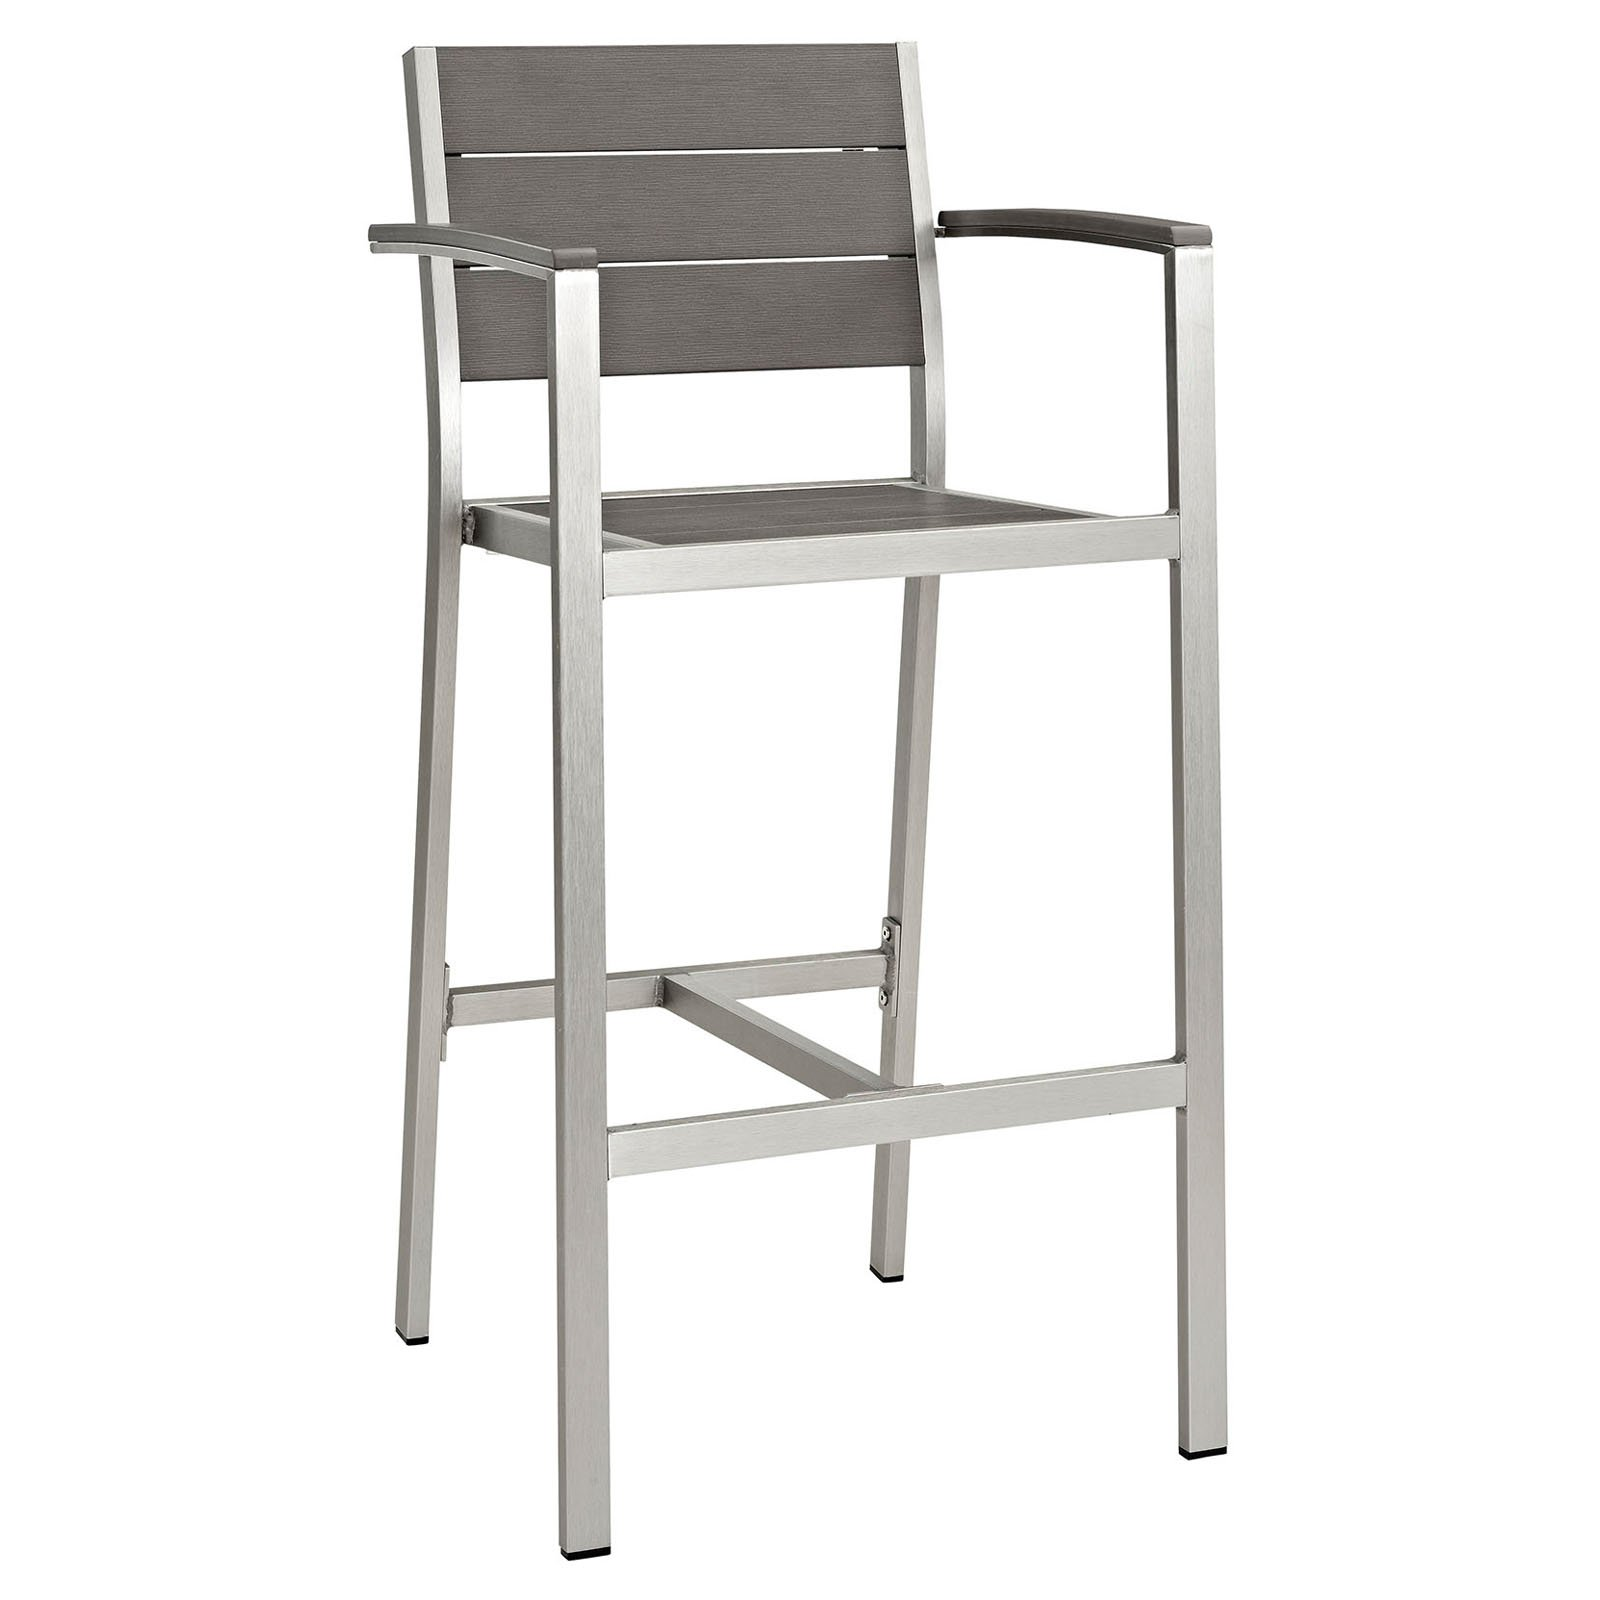 Modway Shore Outdoor Patio Aluminum Bar Stool, Silver/Gray